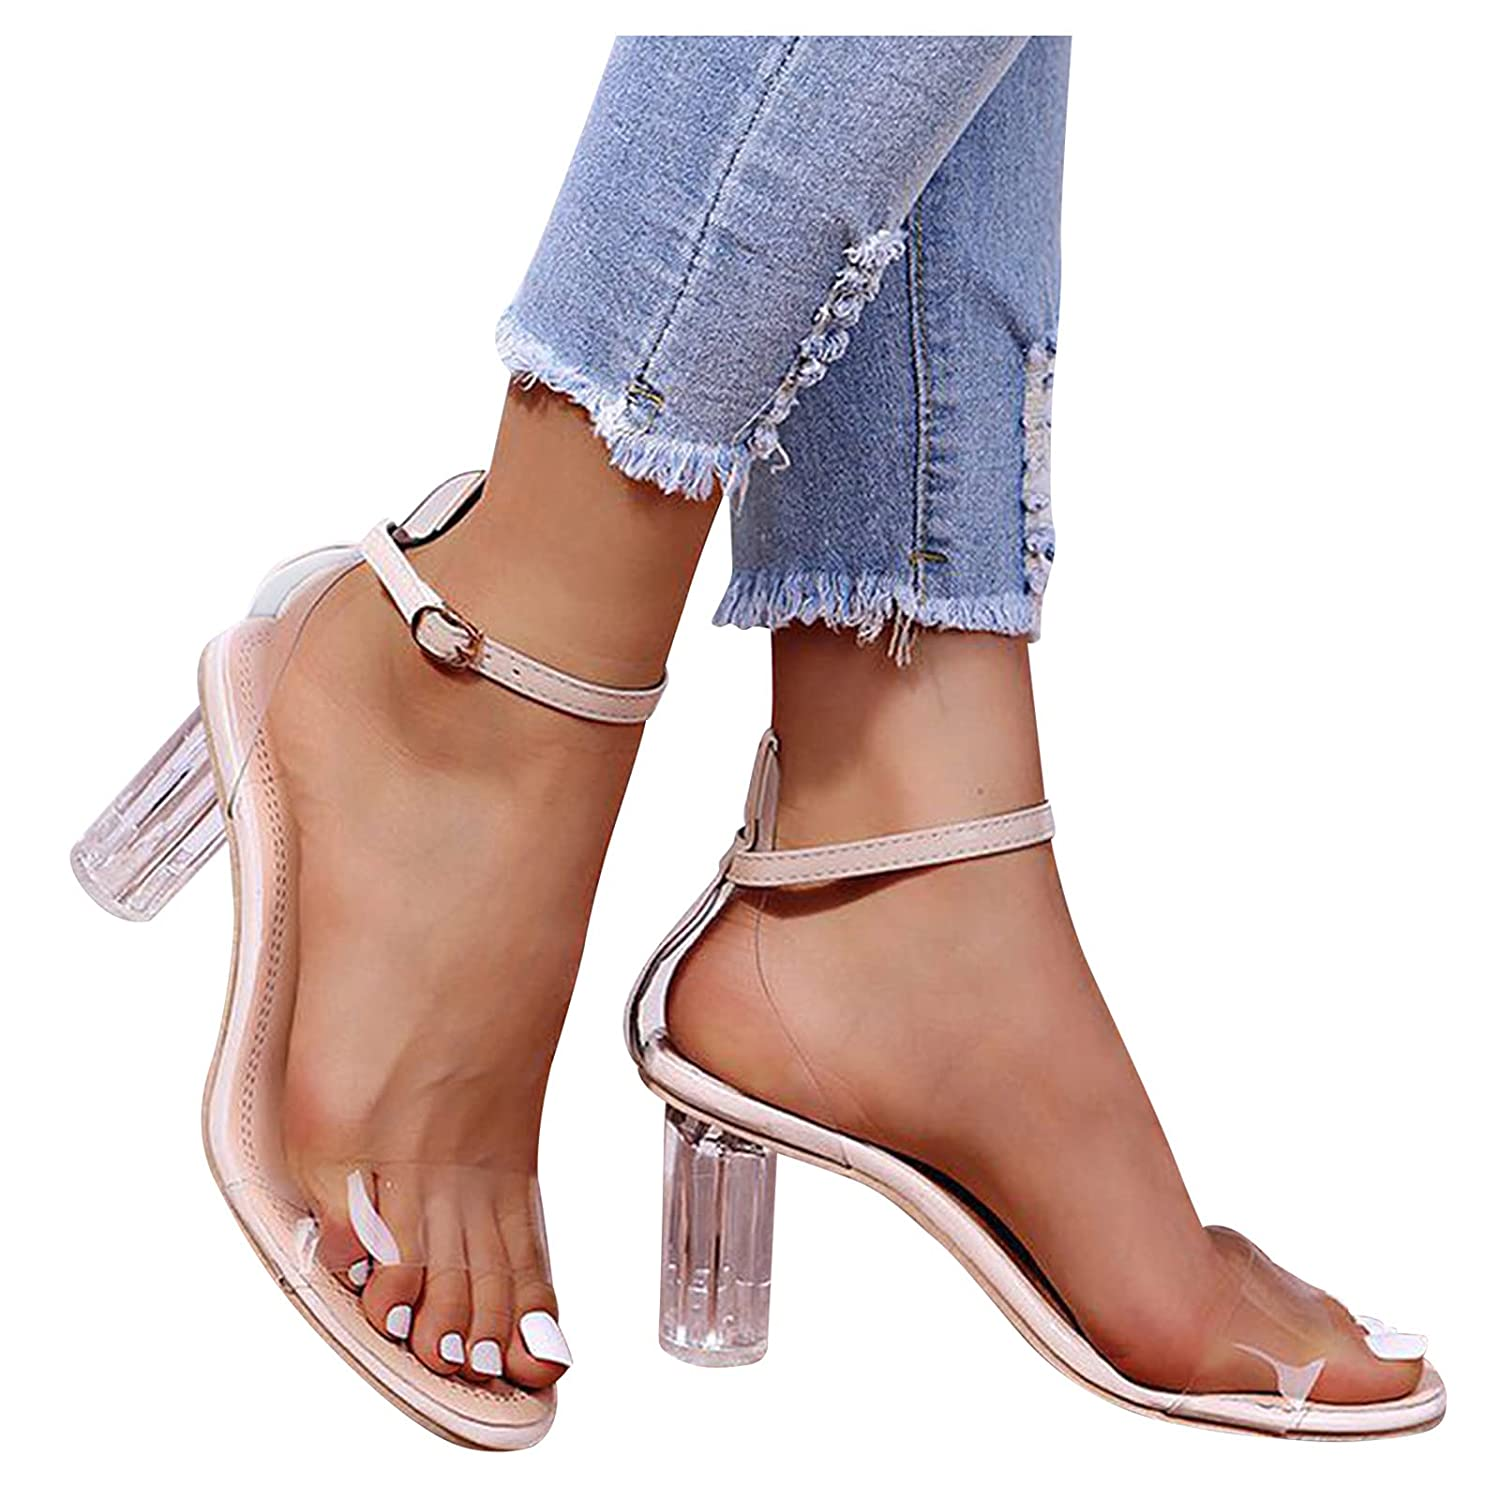 Padaleks Women's Two Strap Heeled National products Shoes Dealing full price reduction Sandal Pump Dress Casual